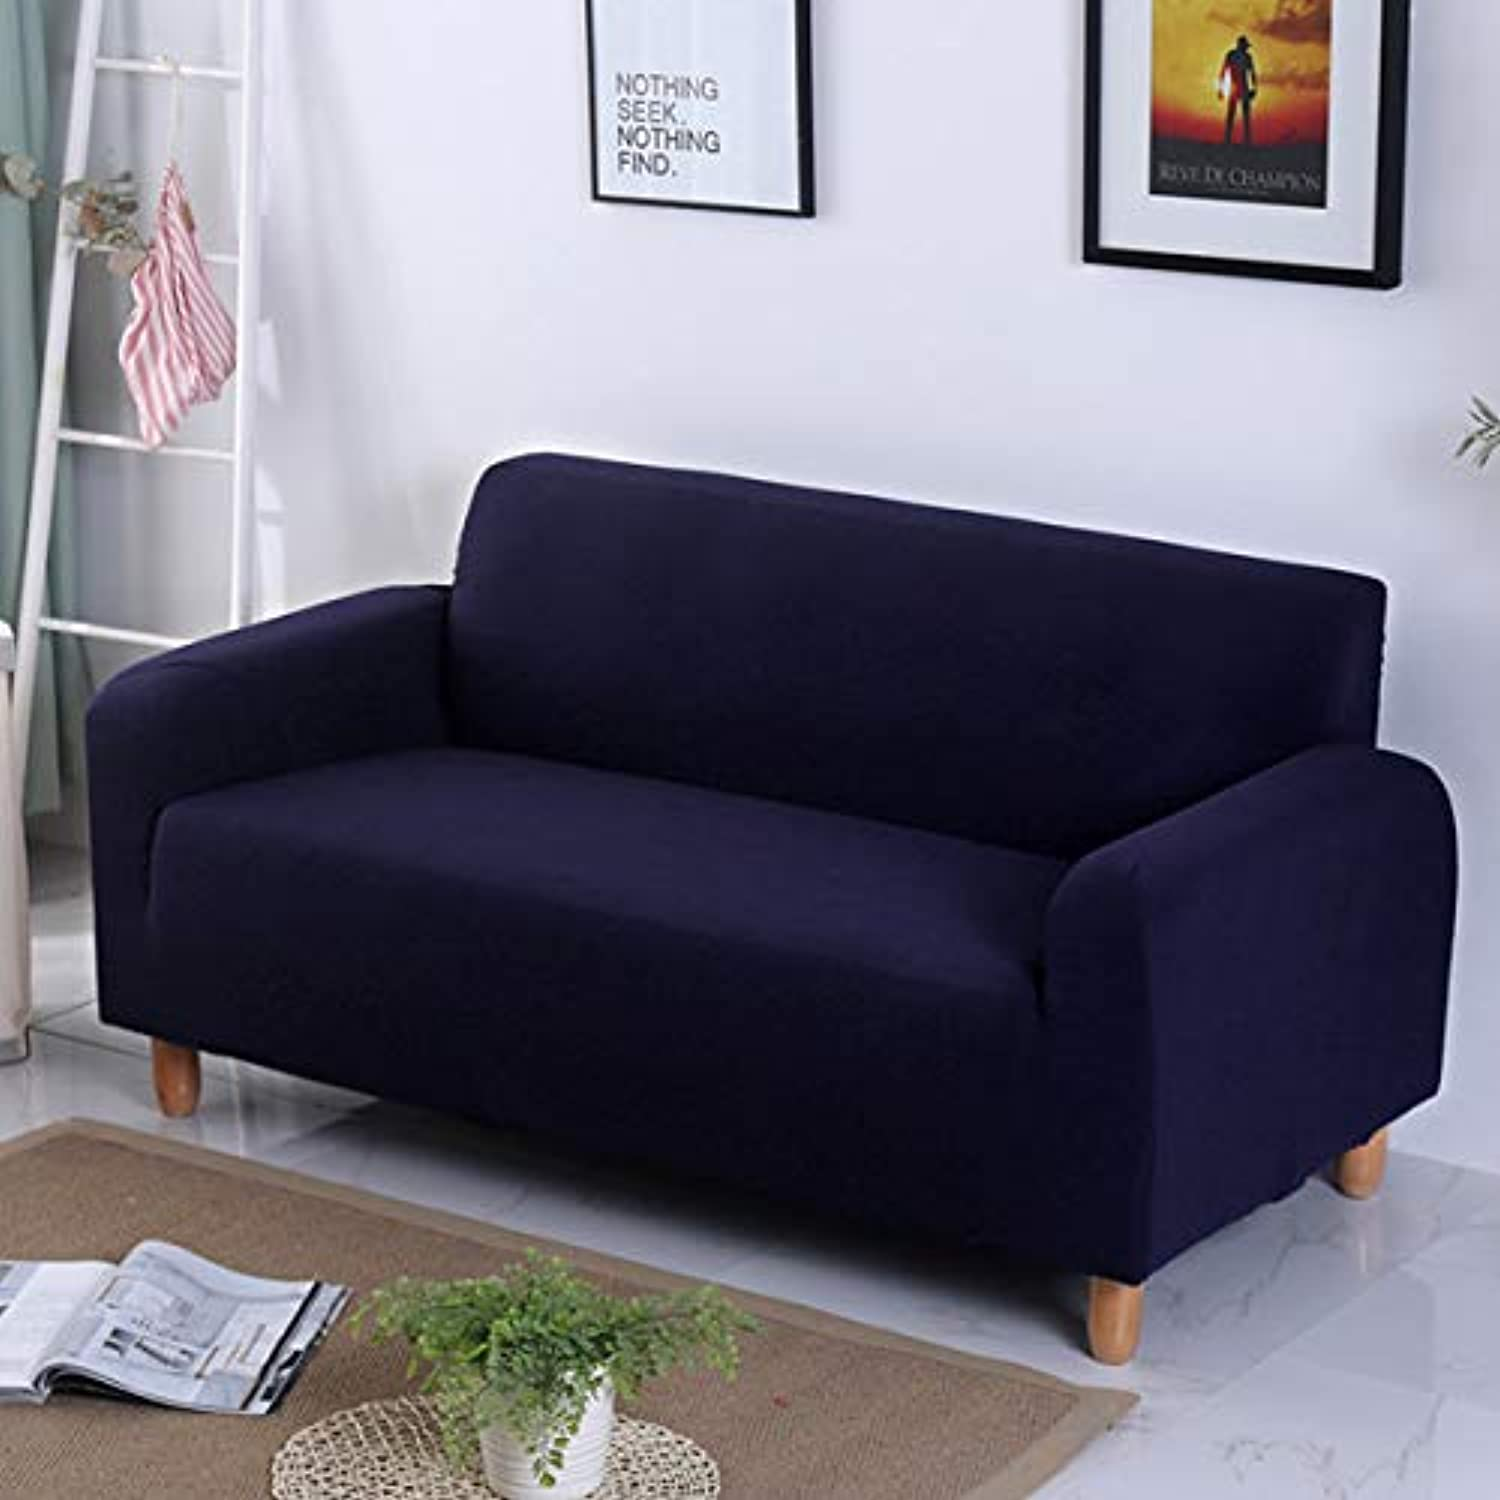 Cushions Sofa Covers for Chair Knitting Slipcover Elastic Tights Sofa Furniture Covers for Universal Armchairs Seat Couch Cover   bluee, Single Seat 90-140cm